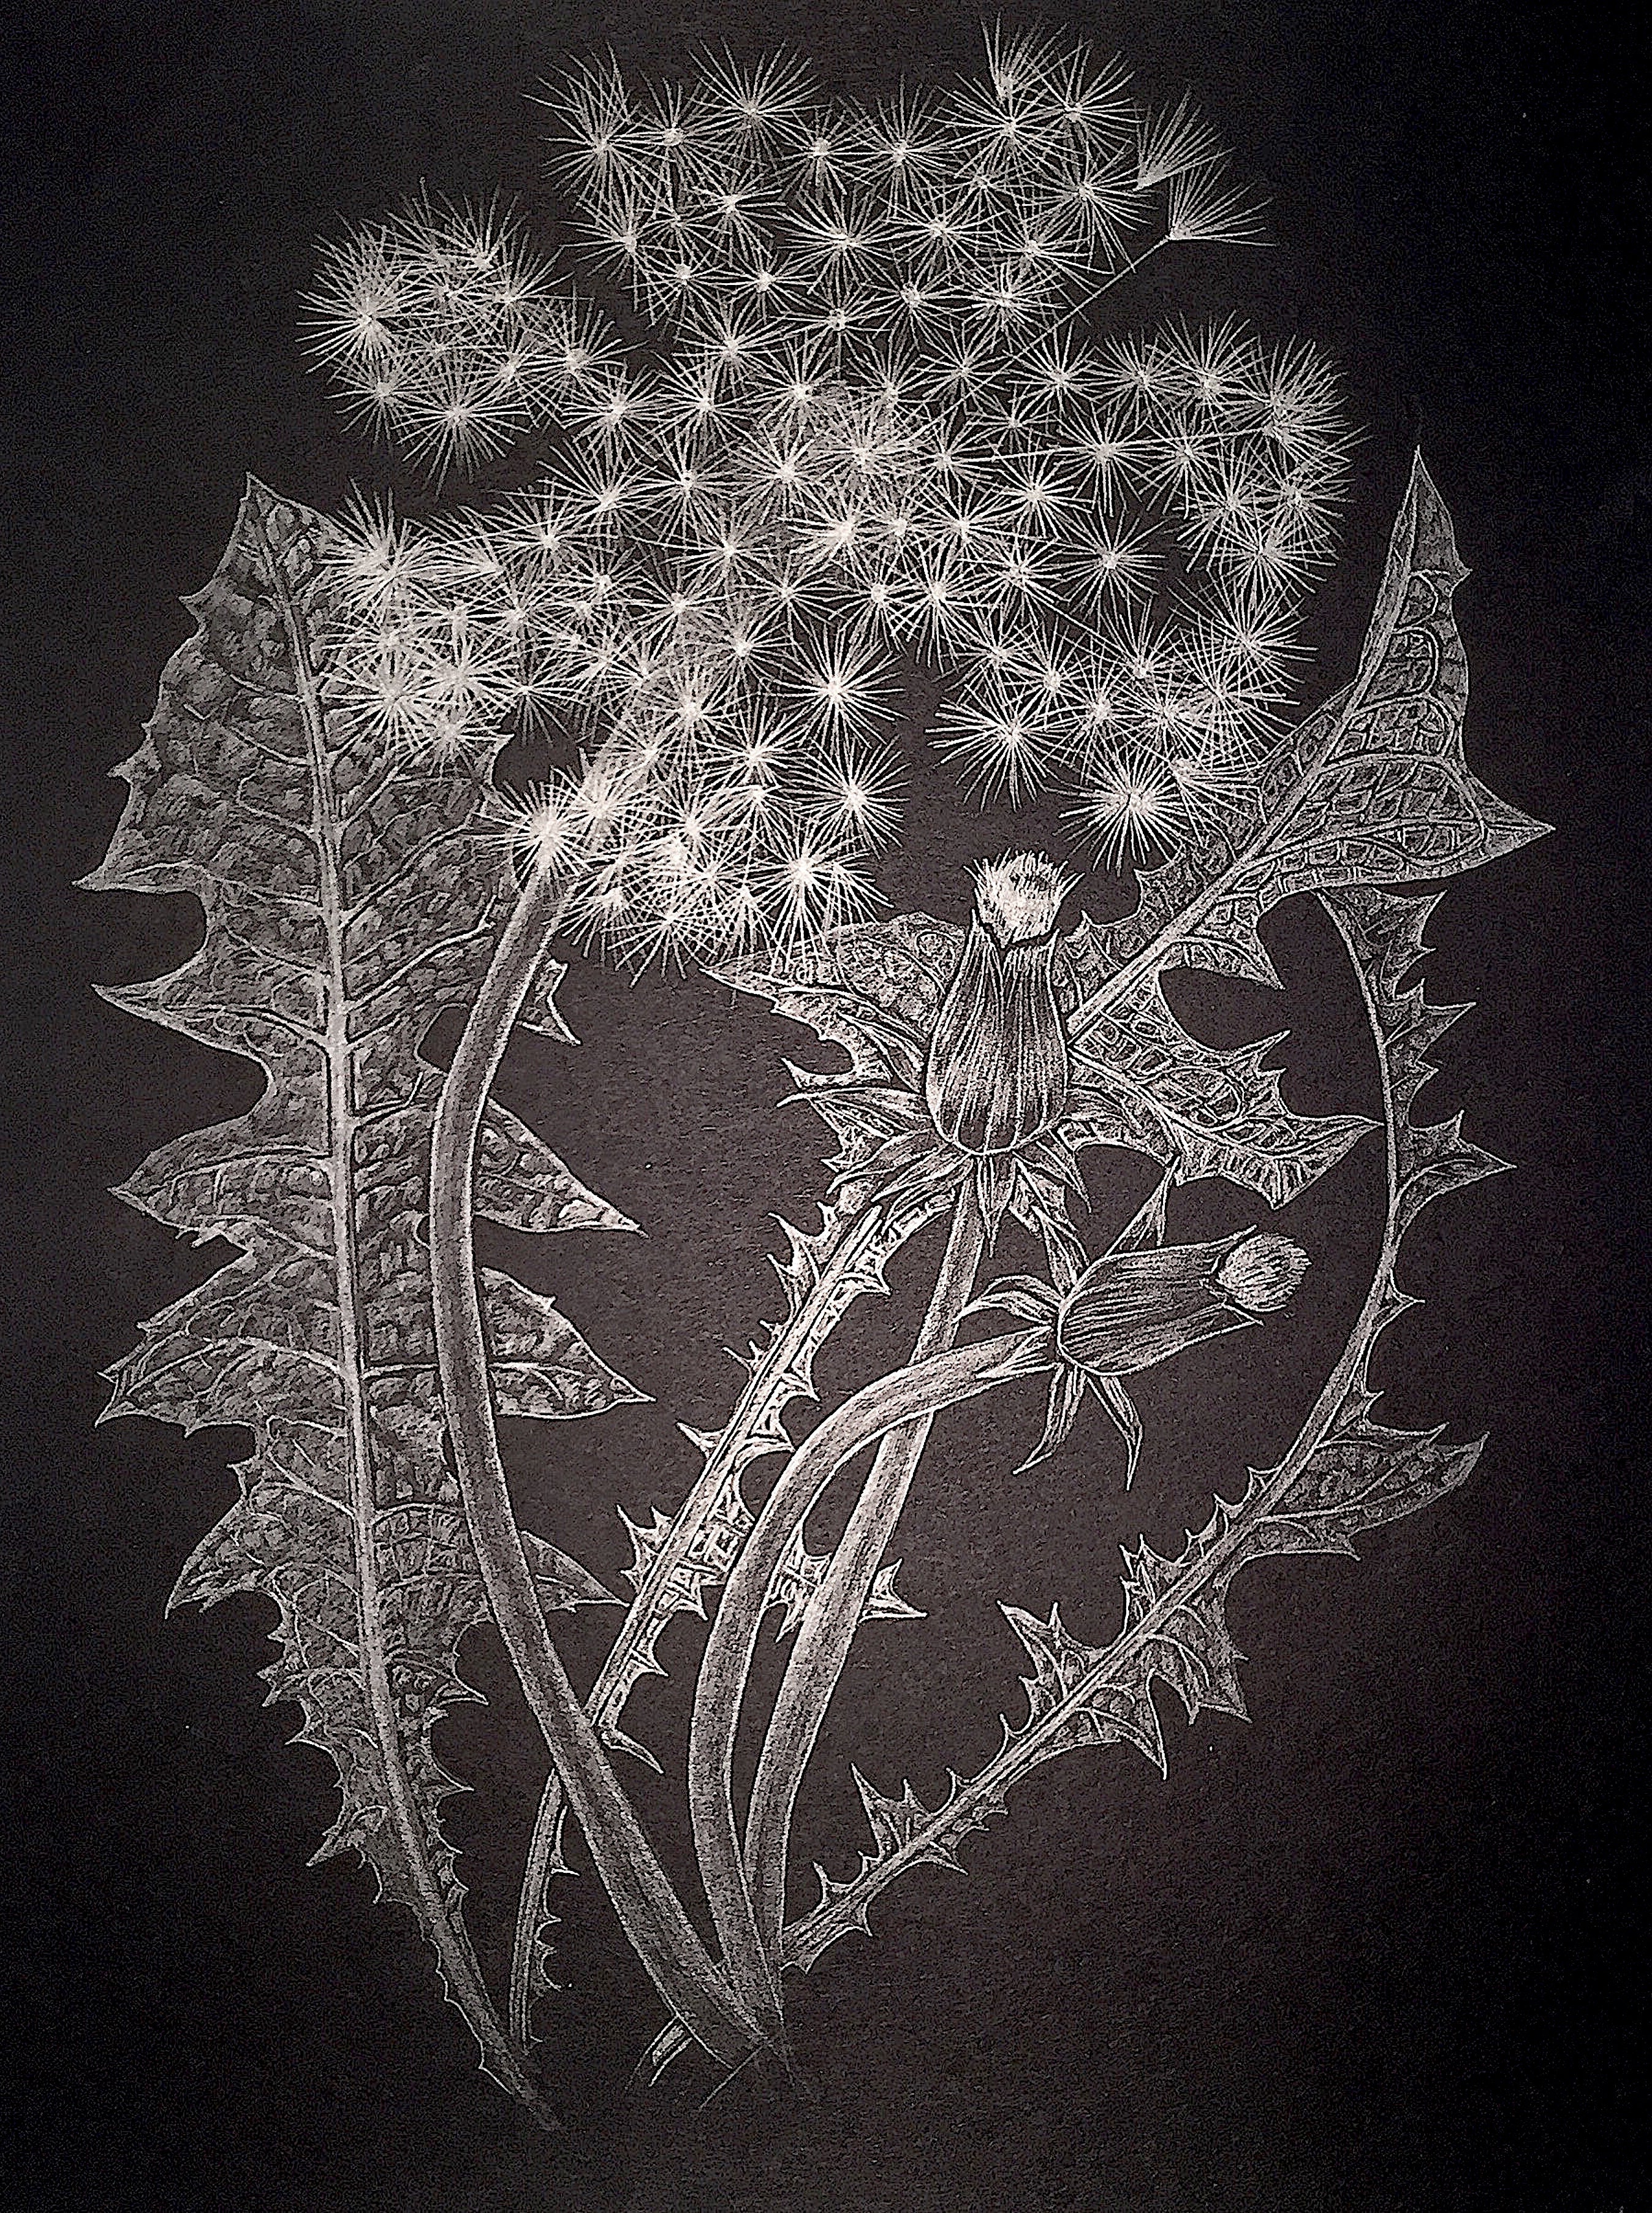 Margot Glass, Dandelion with Buds, graphite on paper realist still life drawing